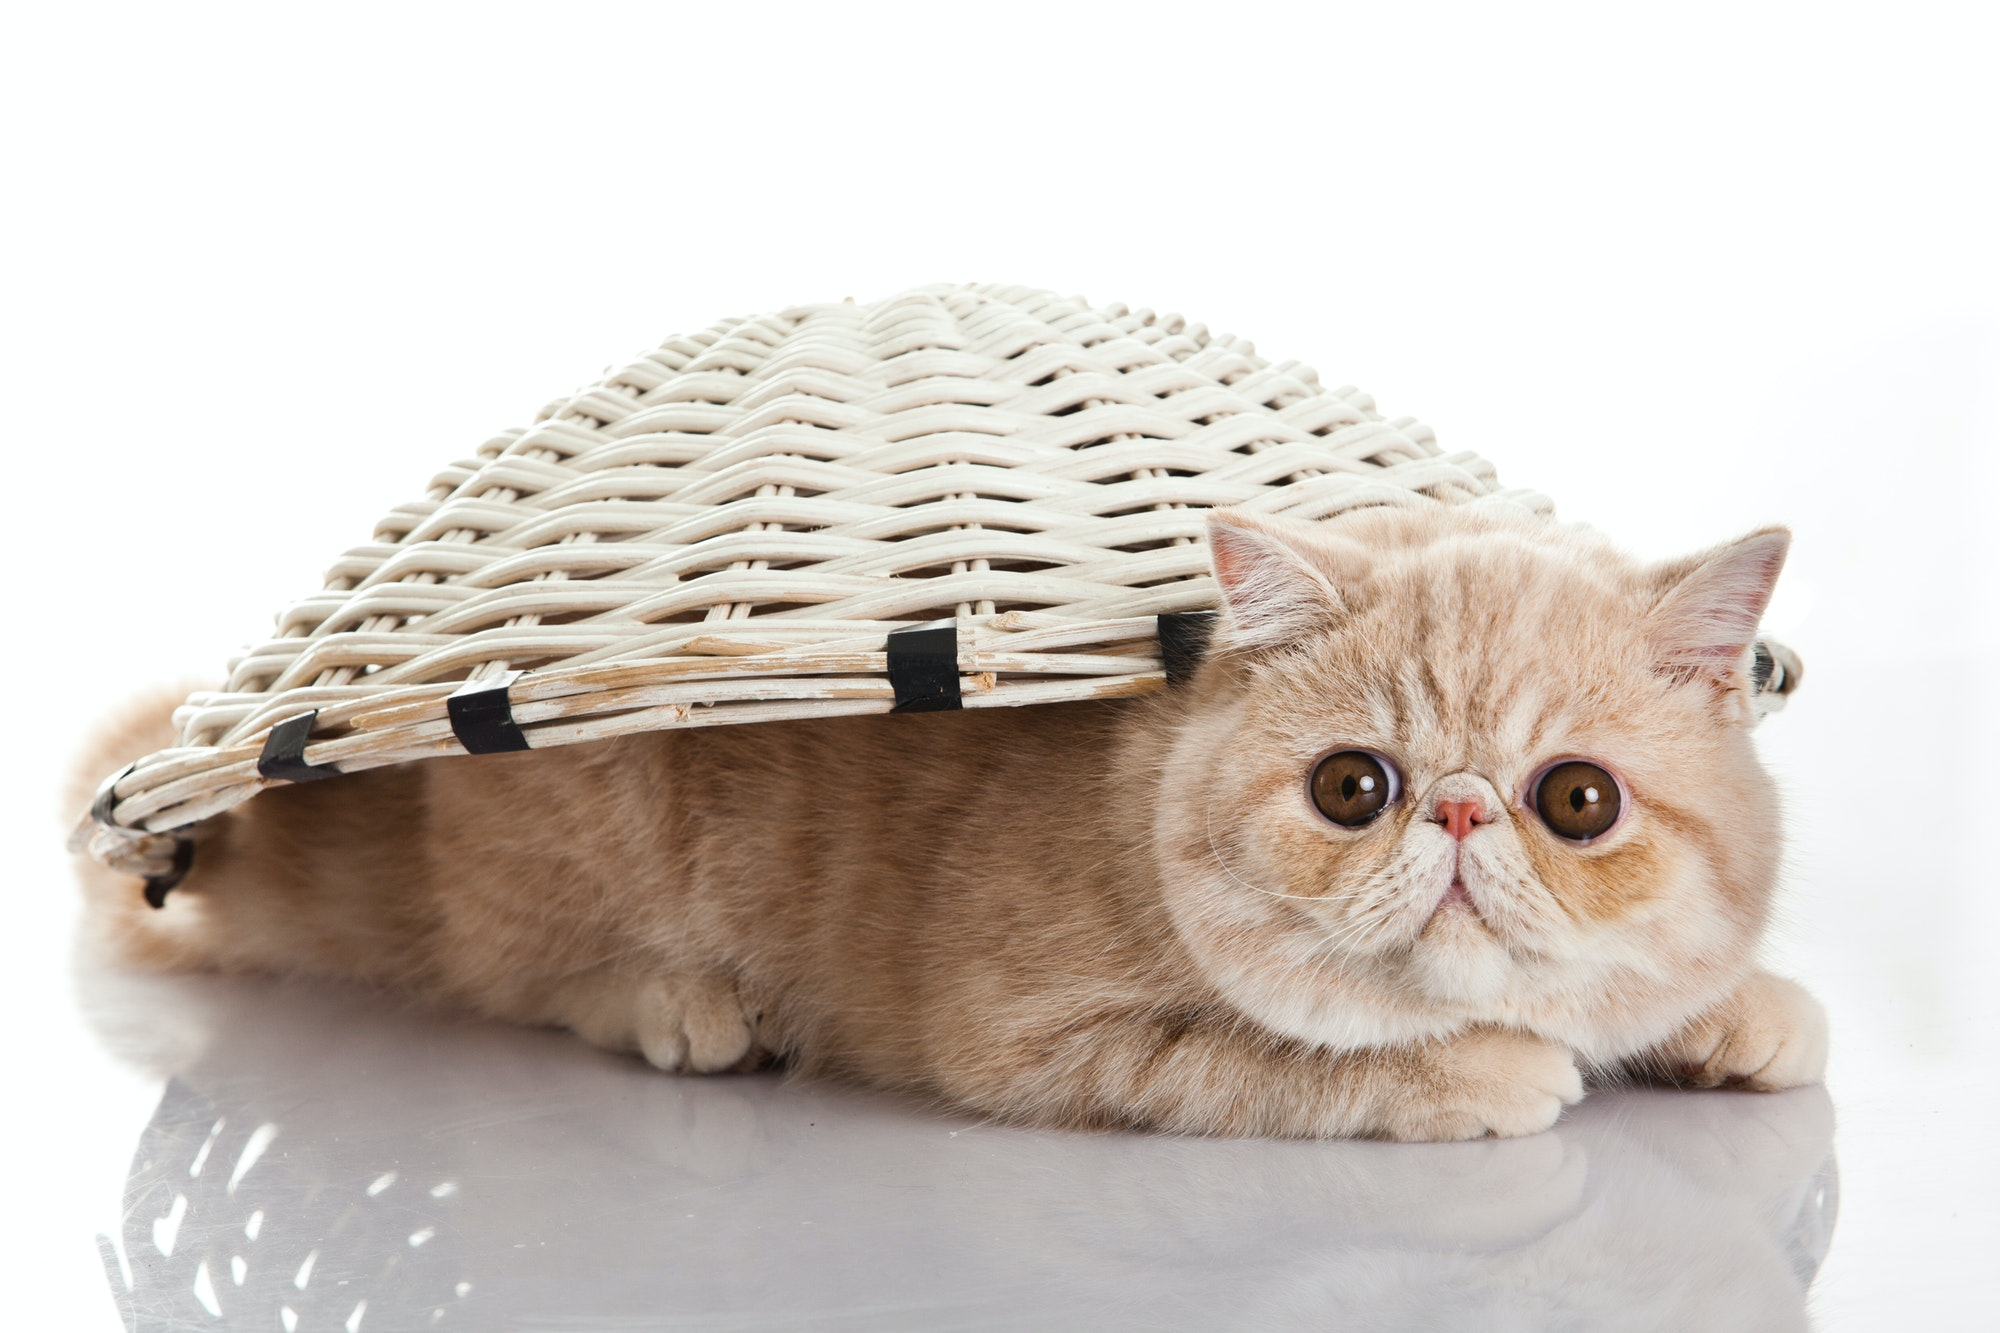 Exotic shorthair cat. Funny playful cat